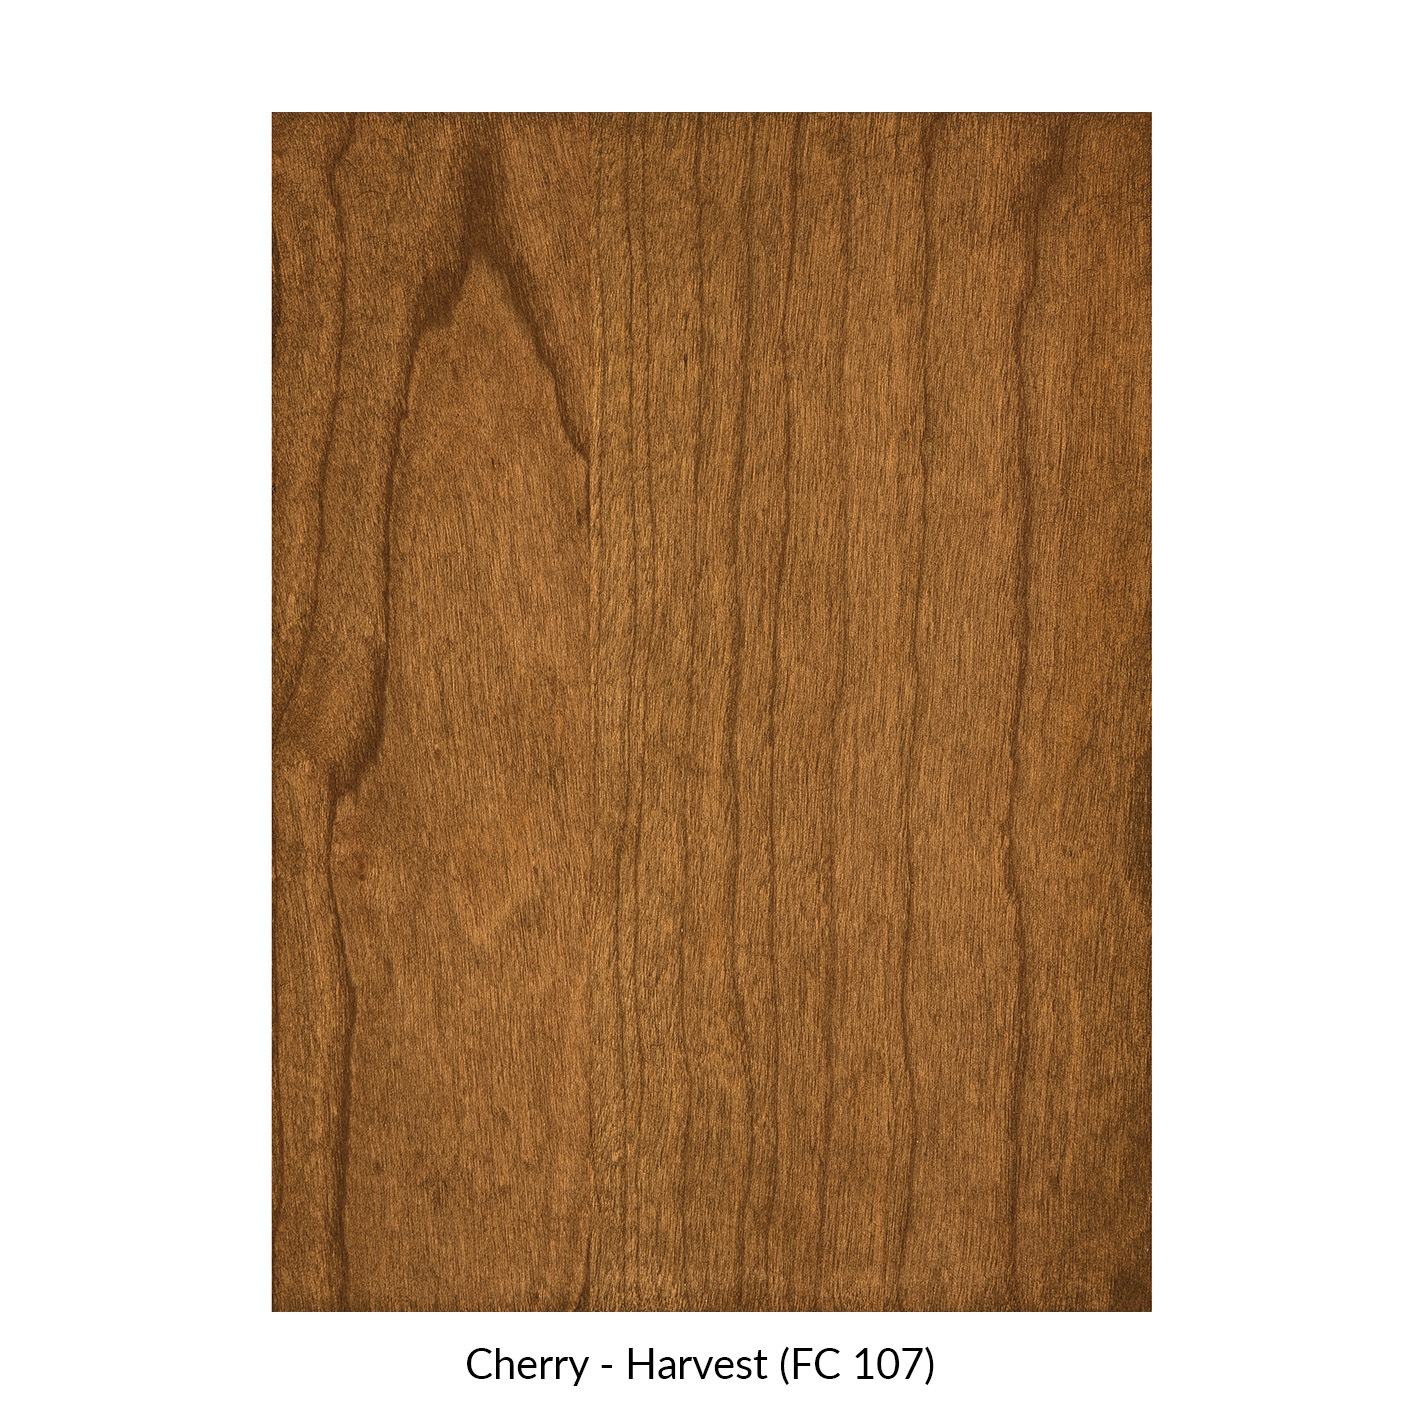 spectrum-cherry-harvest-fc-107.jpg